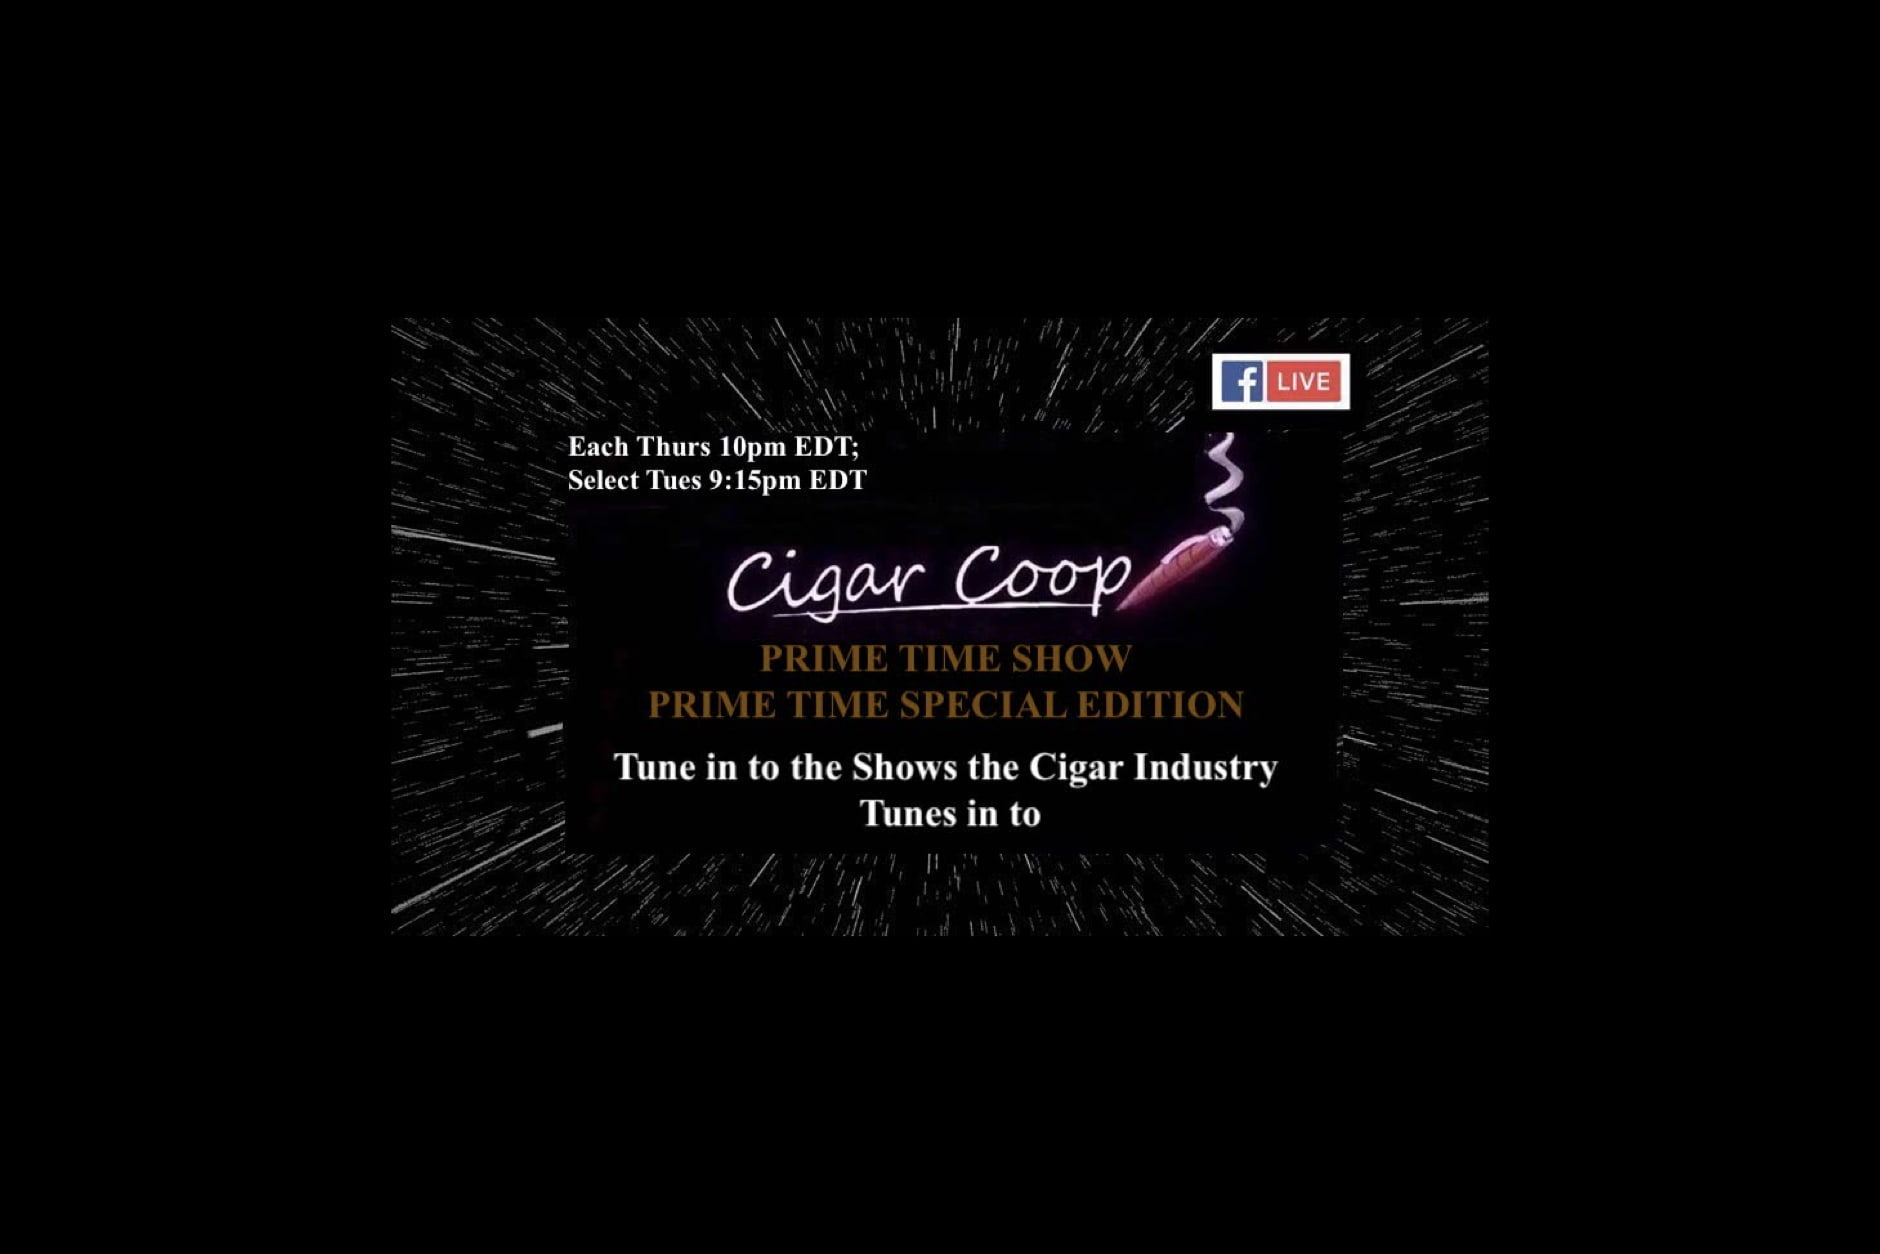 Watch: Charlie Minato on Cigar Coop's Prime Time Show (9:00 P.M. CDT) Featured Image